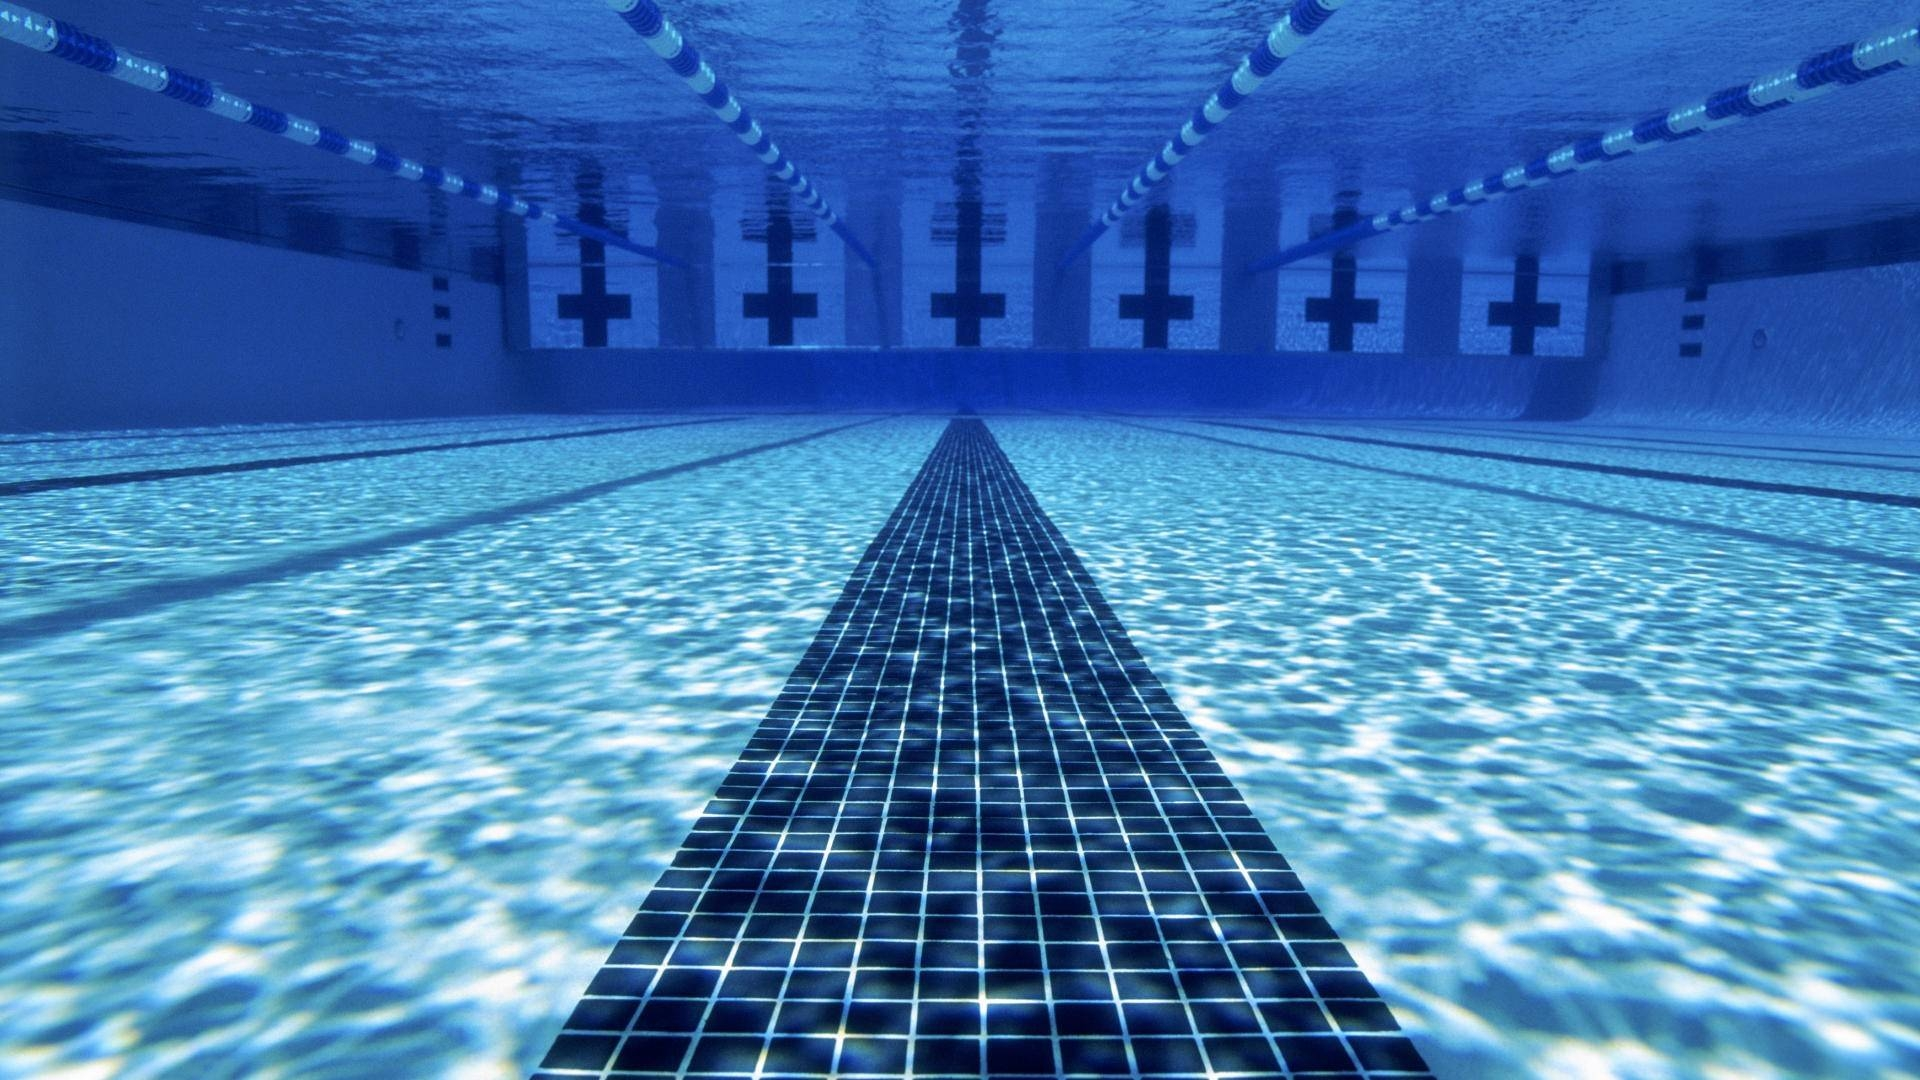 Swimming Pool Lanes Background norwin aqua club : tryouts/lessons